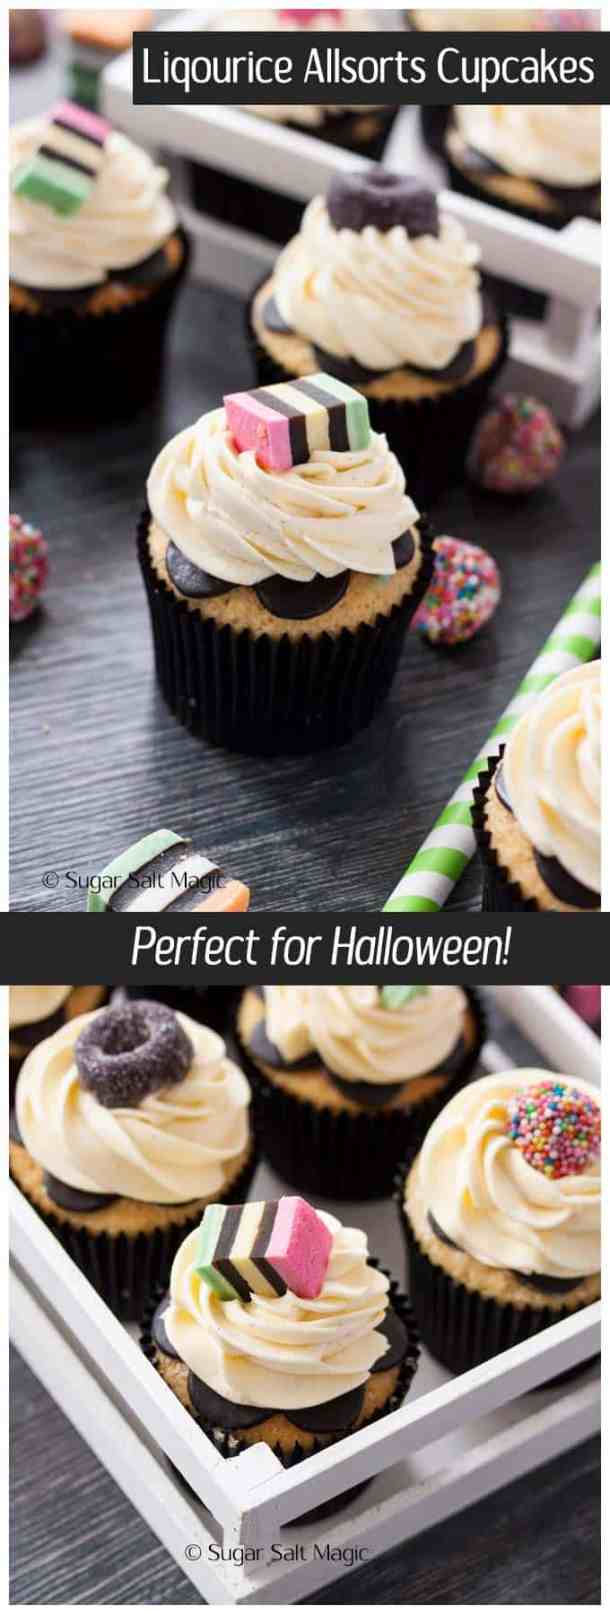 These #Liquourice #Allsorts Cupcakes are a vanilla cupcake with anise extract to give it a subtle liqourice flavour. Perfect for a #Halloween get together.